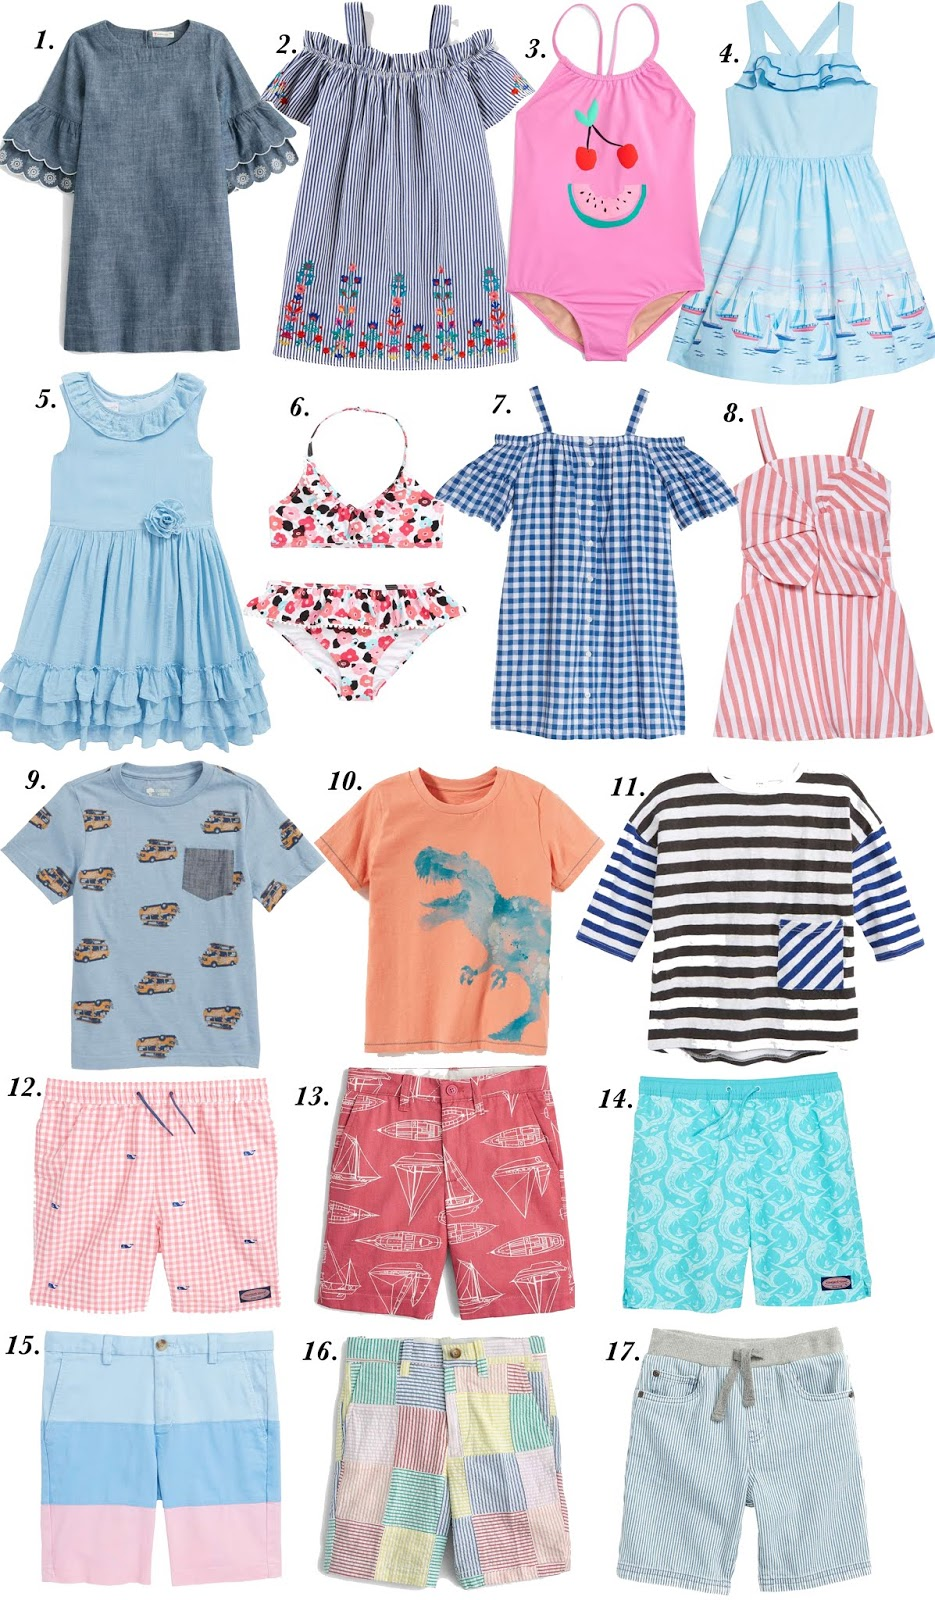 Nordstrom Half Yearly Sale Picks for Kids - Something Delightful Blog